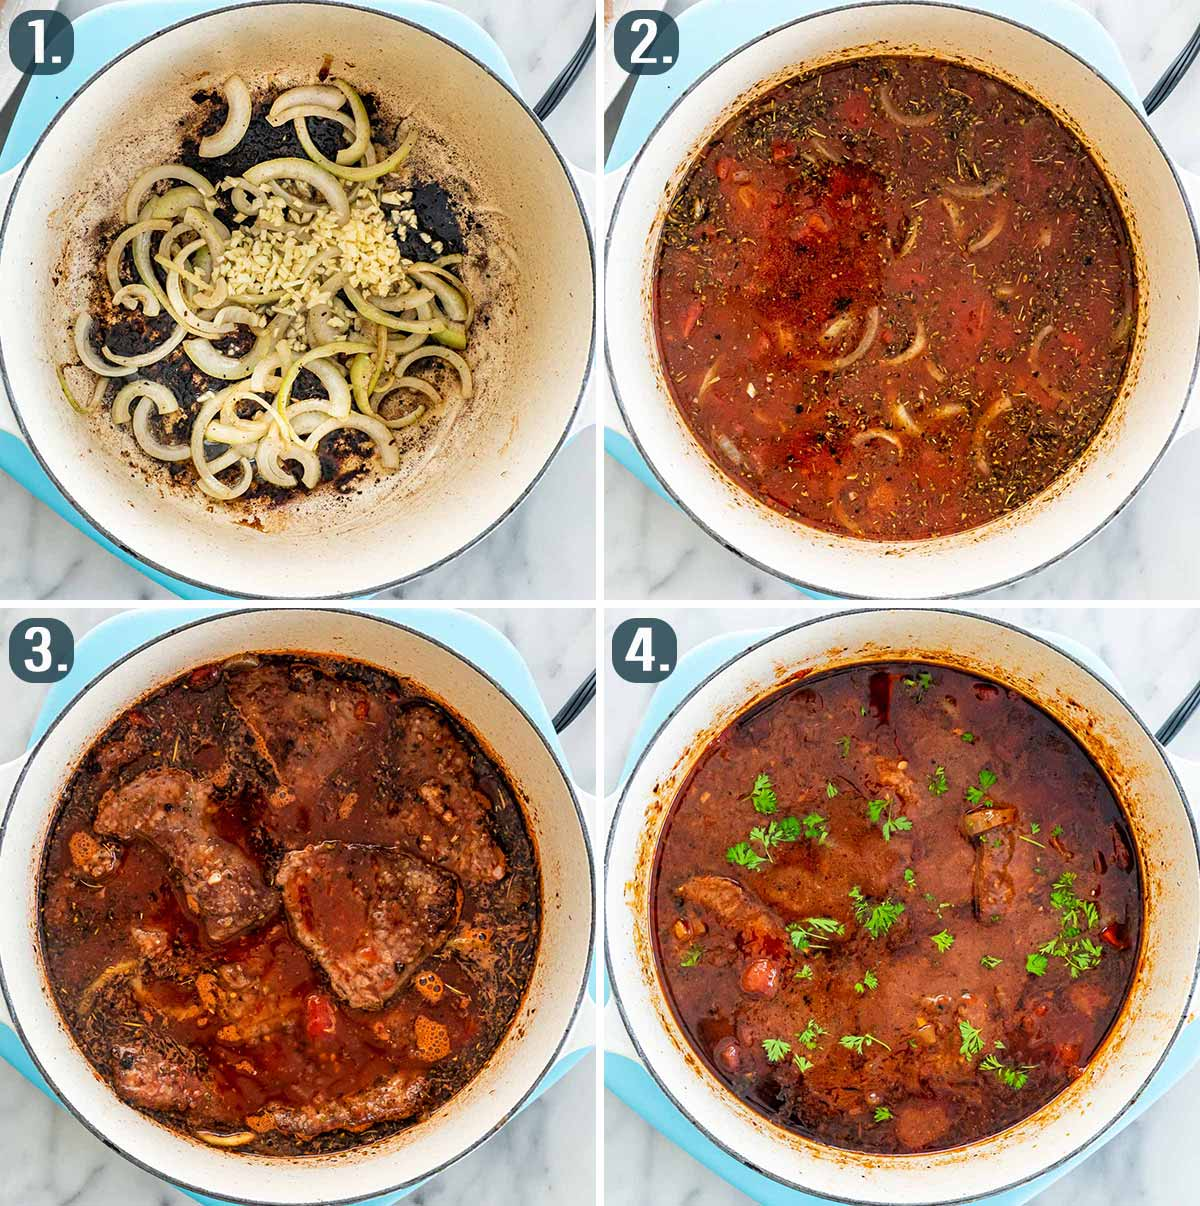 process shots showing how to make sauce for swiss steak.